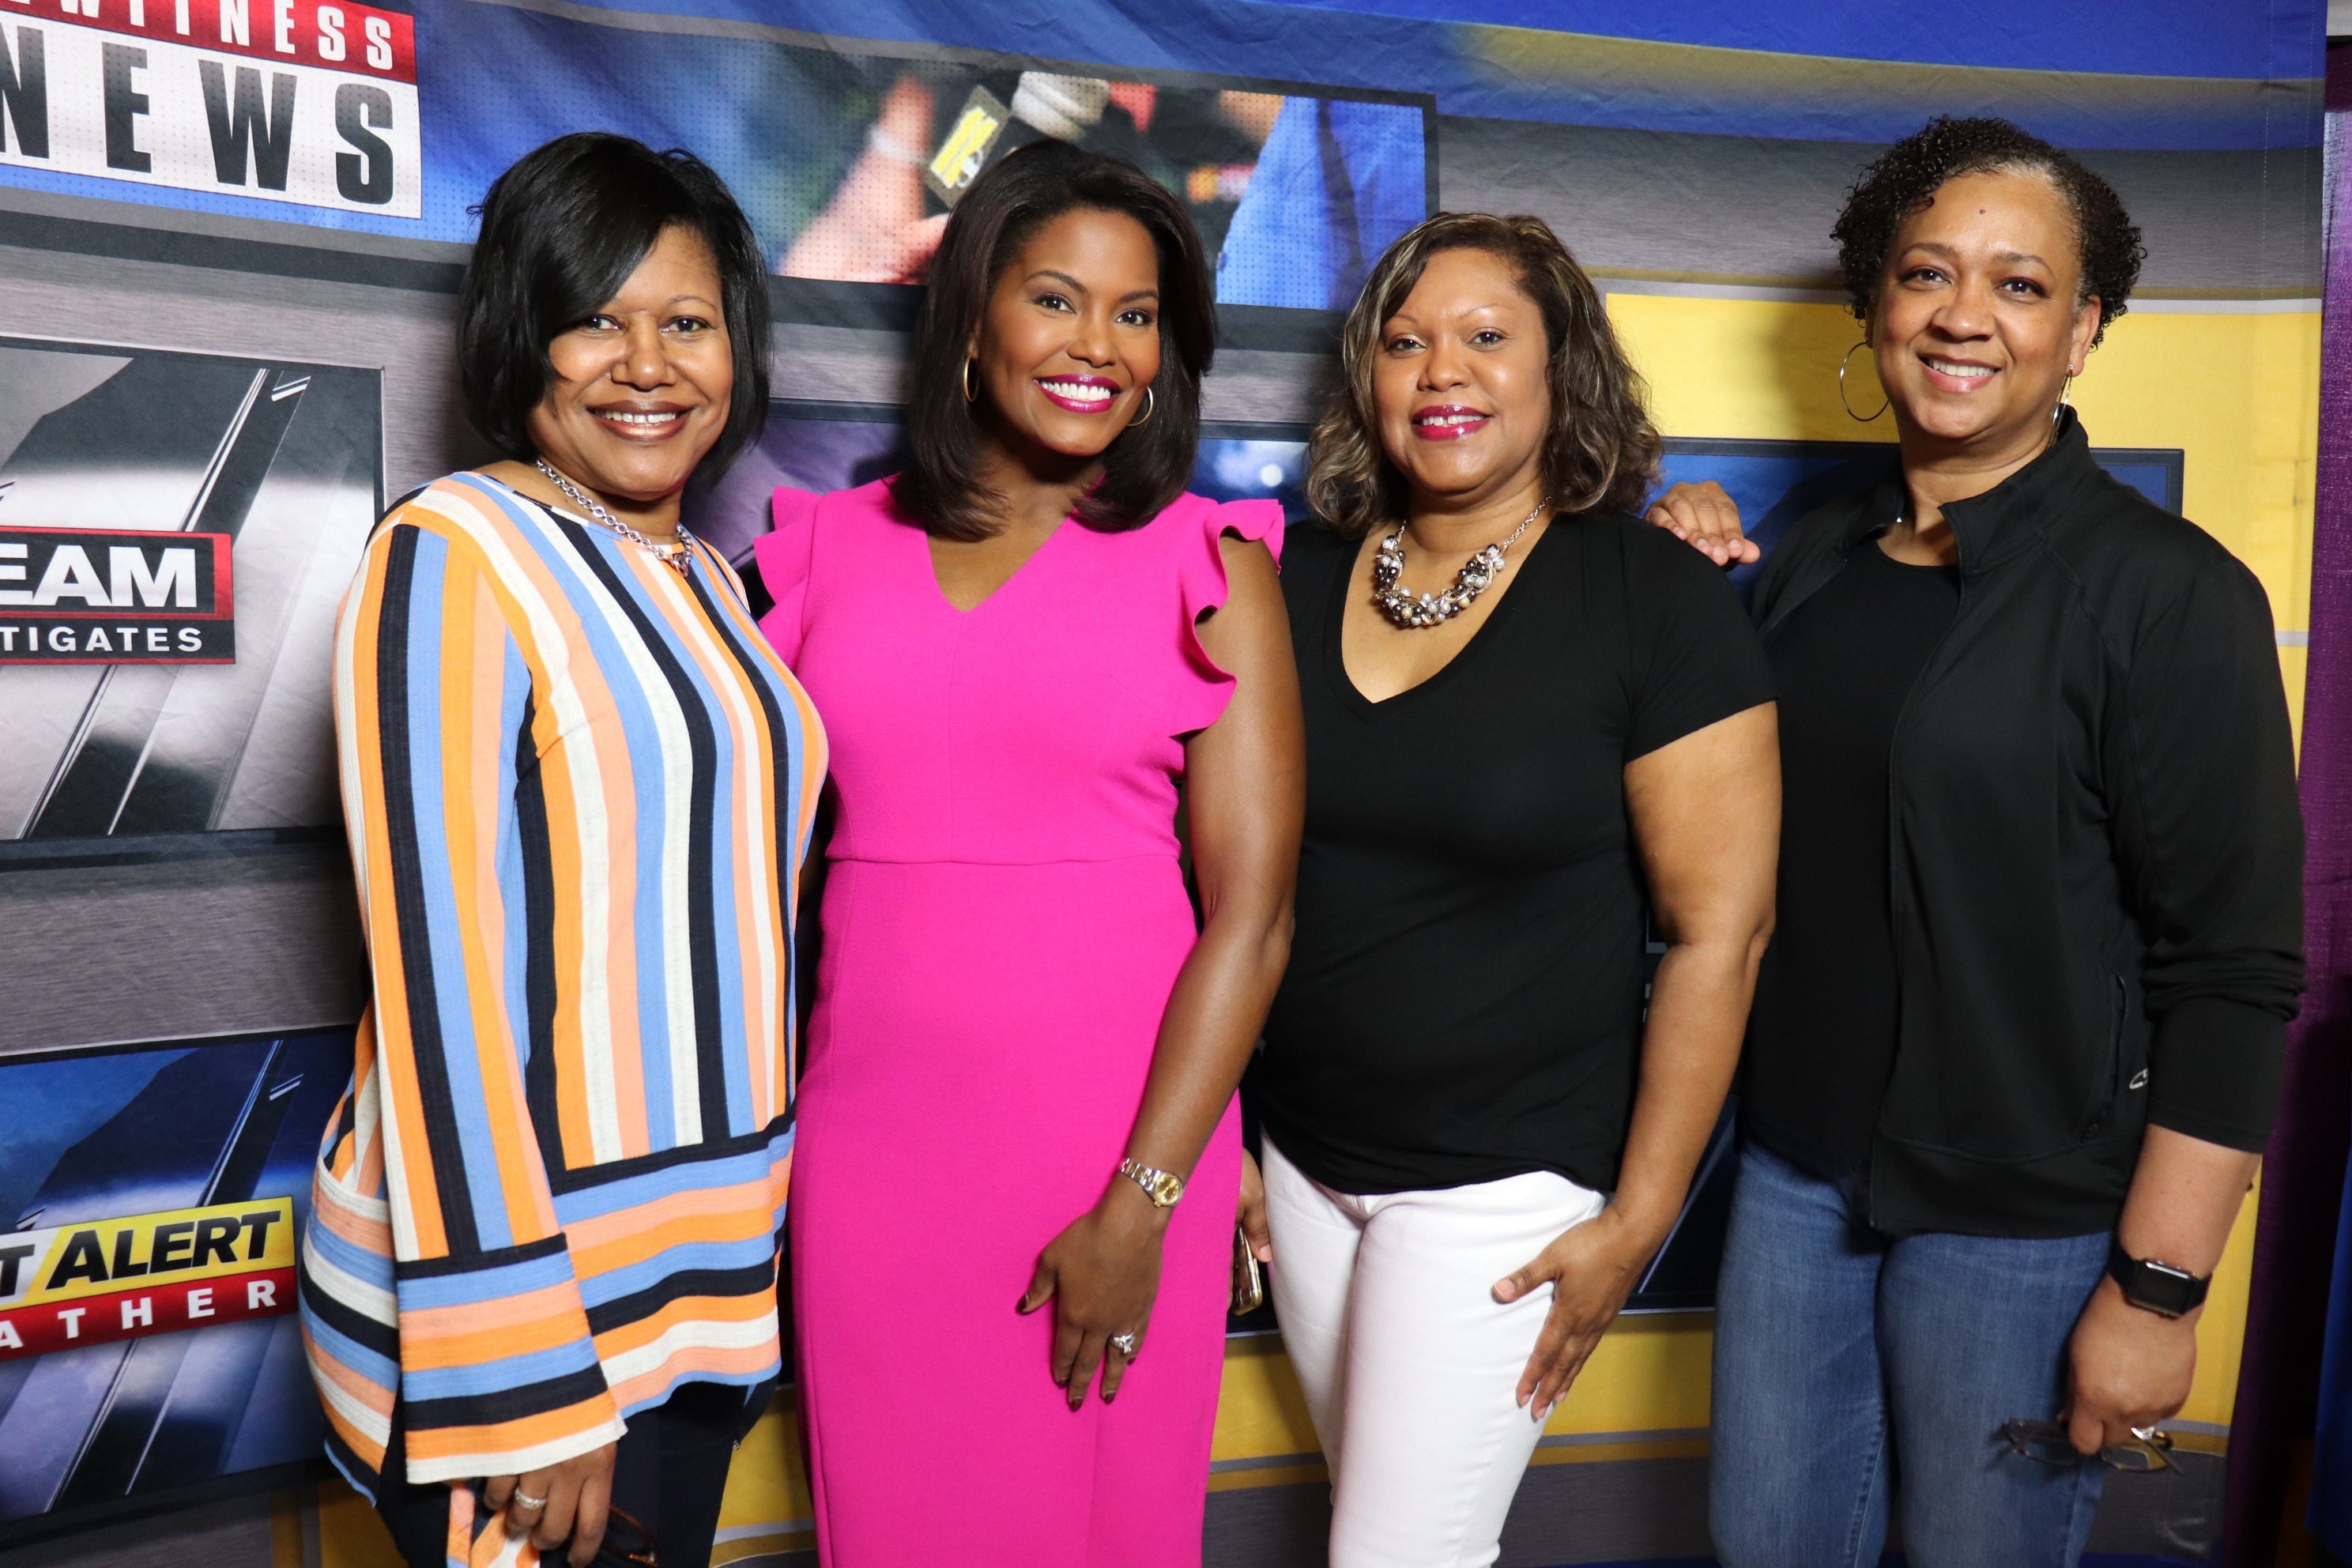 "<div class=""meta image-caption""><div class=""origin-logo origin-image wtvd""><span>WTVD</span></div><span class=""caption-text"">Scenes from the Women's Empowerment event at PNC Arena in Raleigh on Saturday.</span></div>"